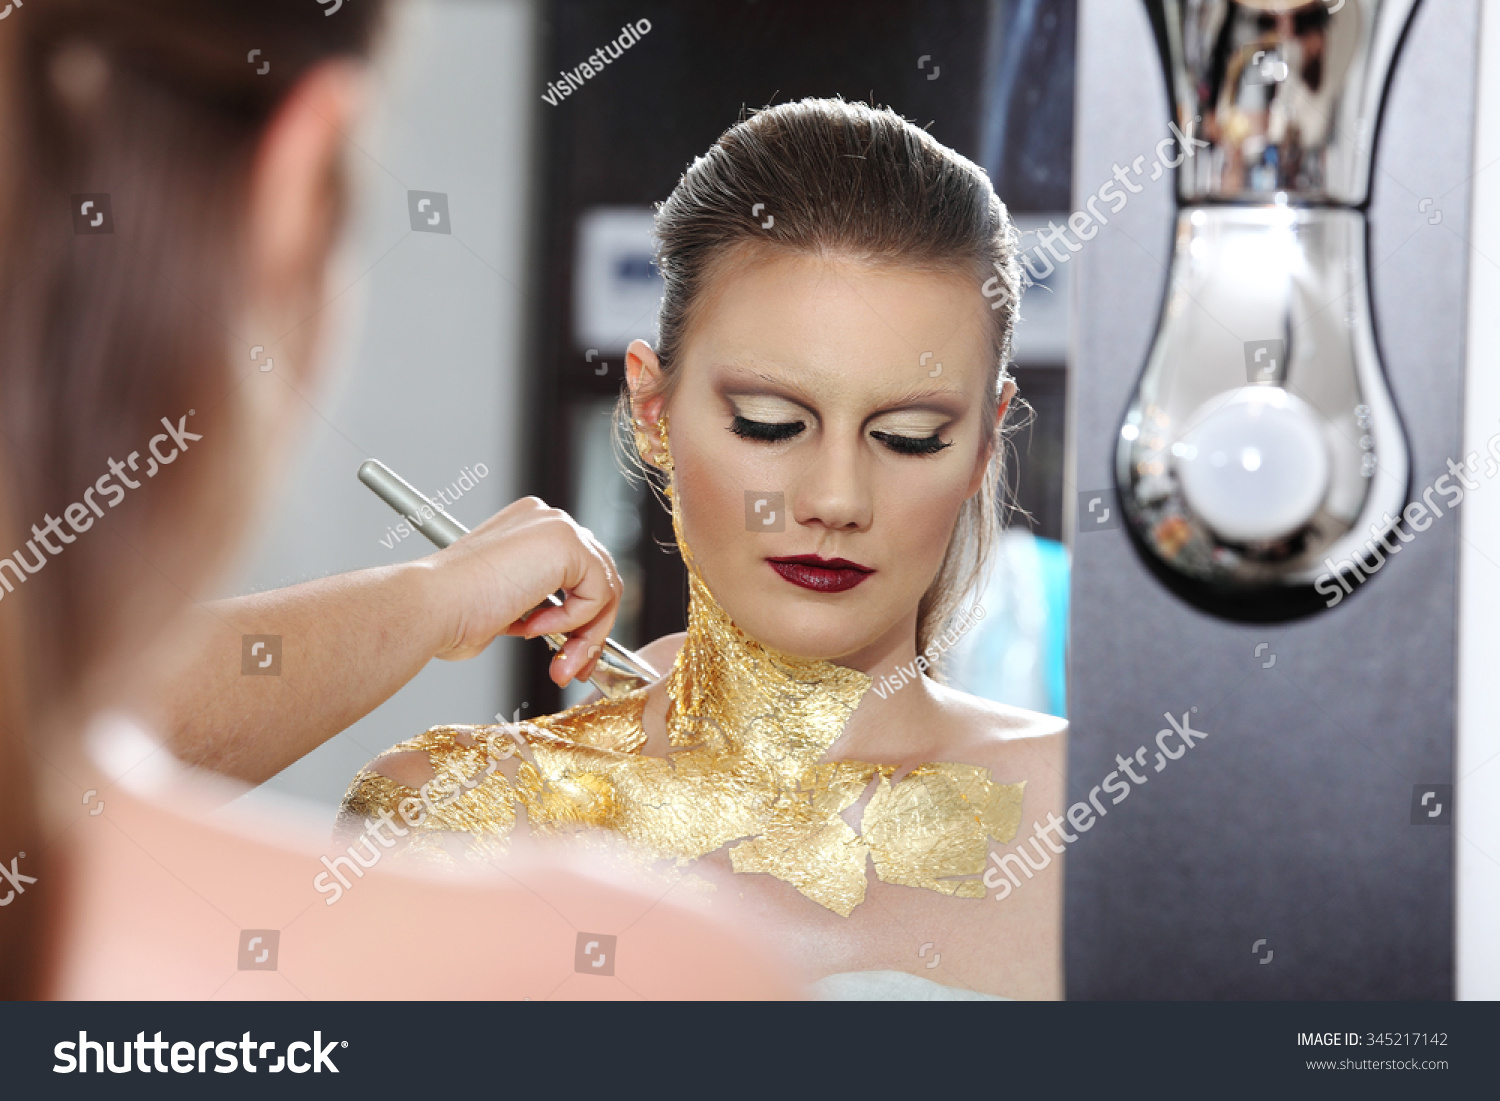 Make Model Mirror Gilded Body Paint Stock Photo Edit Now 345217142